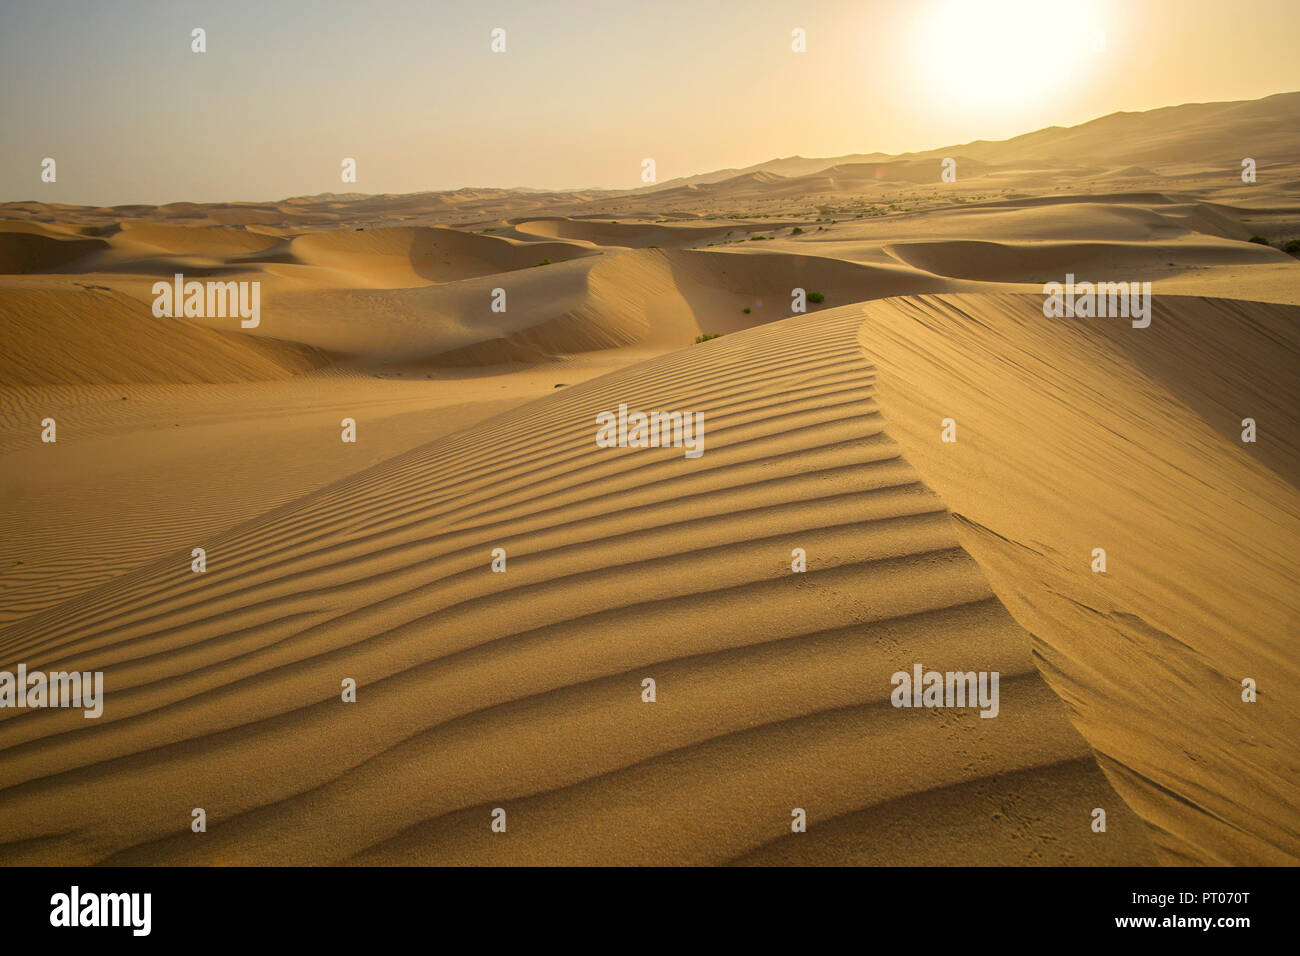 Beautiful Rub al Khali desert at sunrise - Stock Image